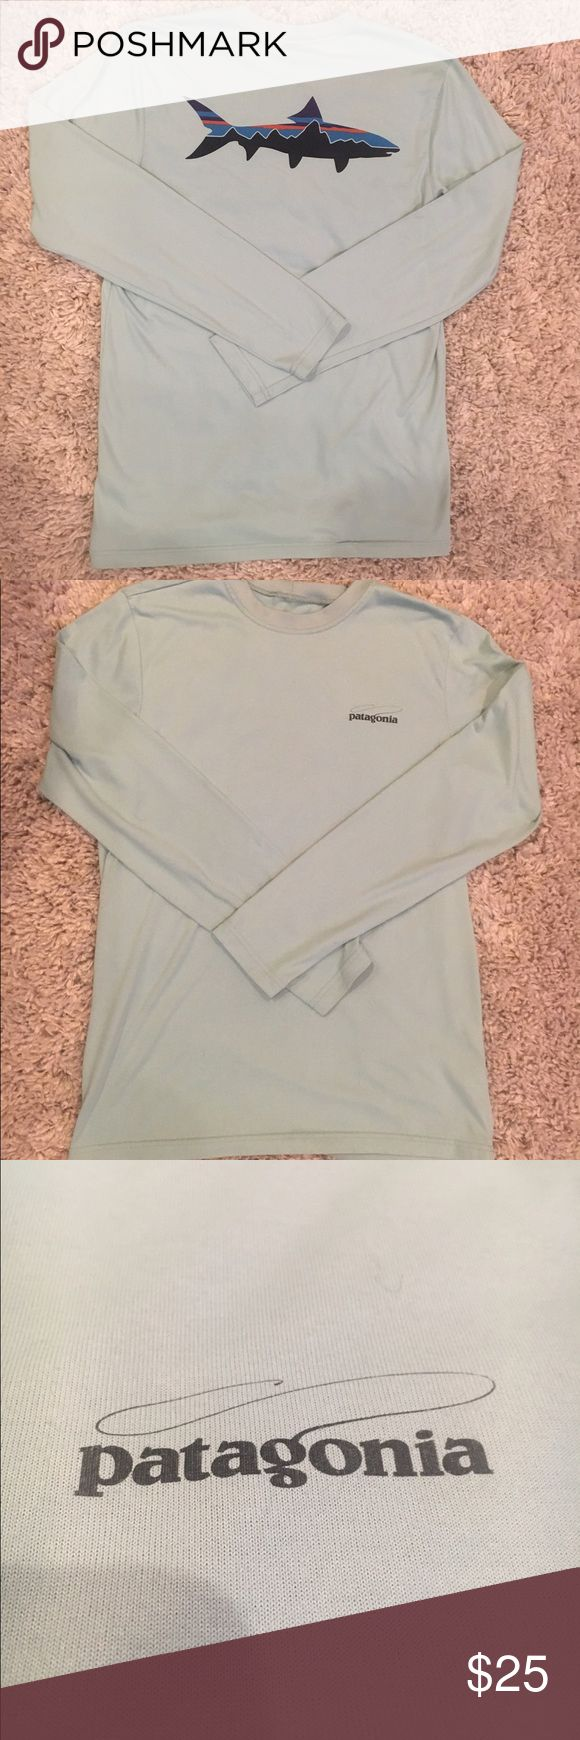 Patagonia Men's Graphic Tech Fish Tee The best of both worlds: a comfortable T-shirt fit in a technical, fast-drying 94% polyester/6% spandex blend with 50+ UPF sun protection, Polygiene® permanent odor control and original fishing-inspired graphics. Patagonia Shirts Tees - Long Sleeve